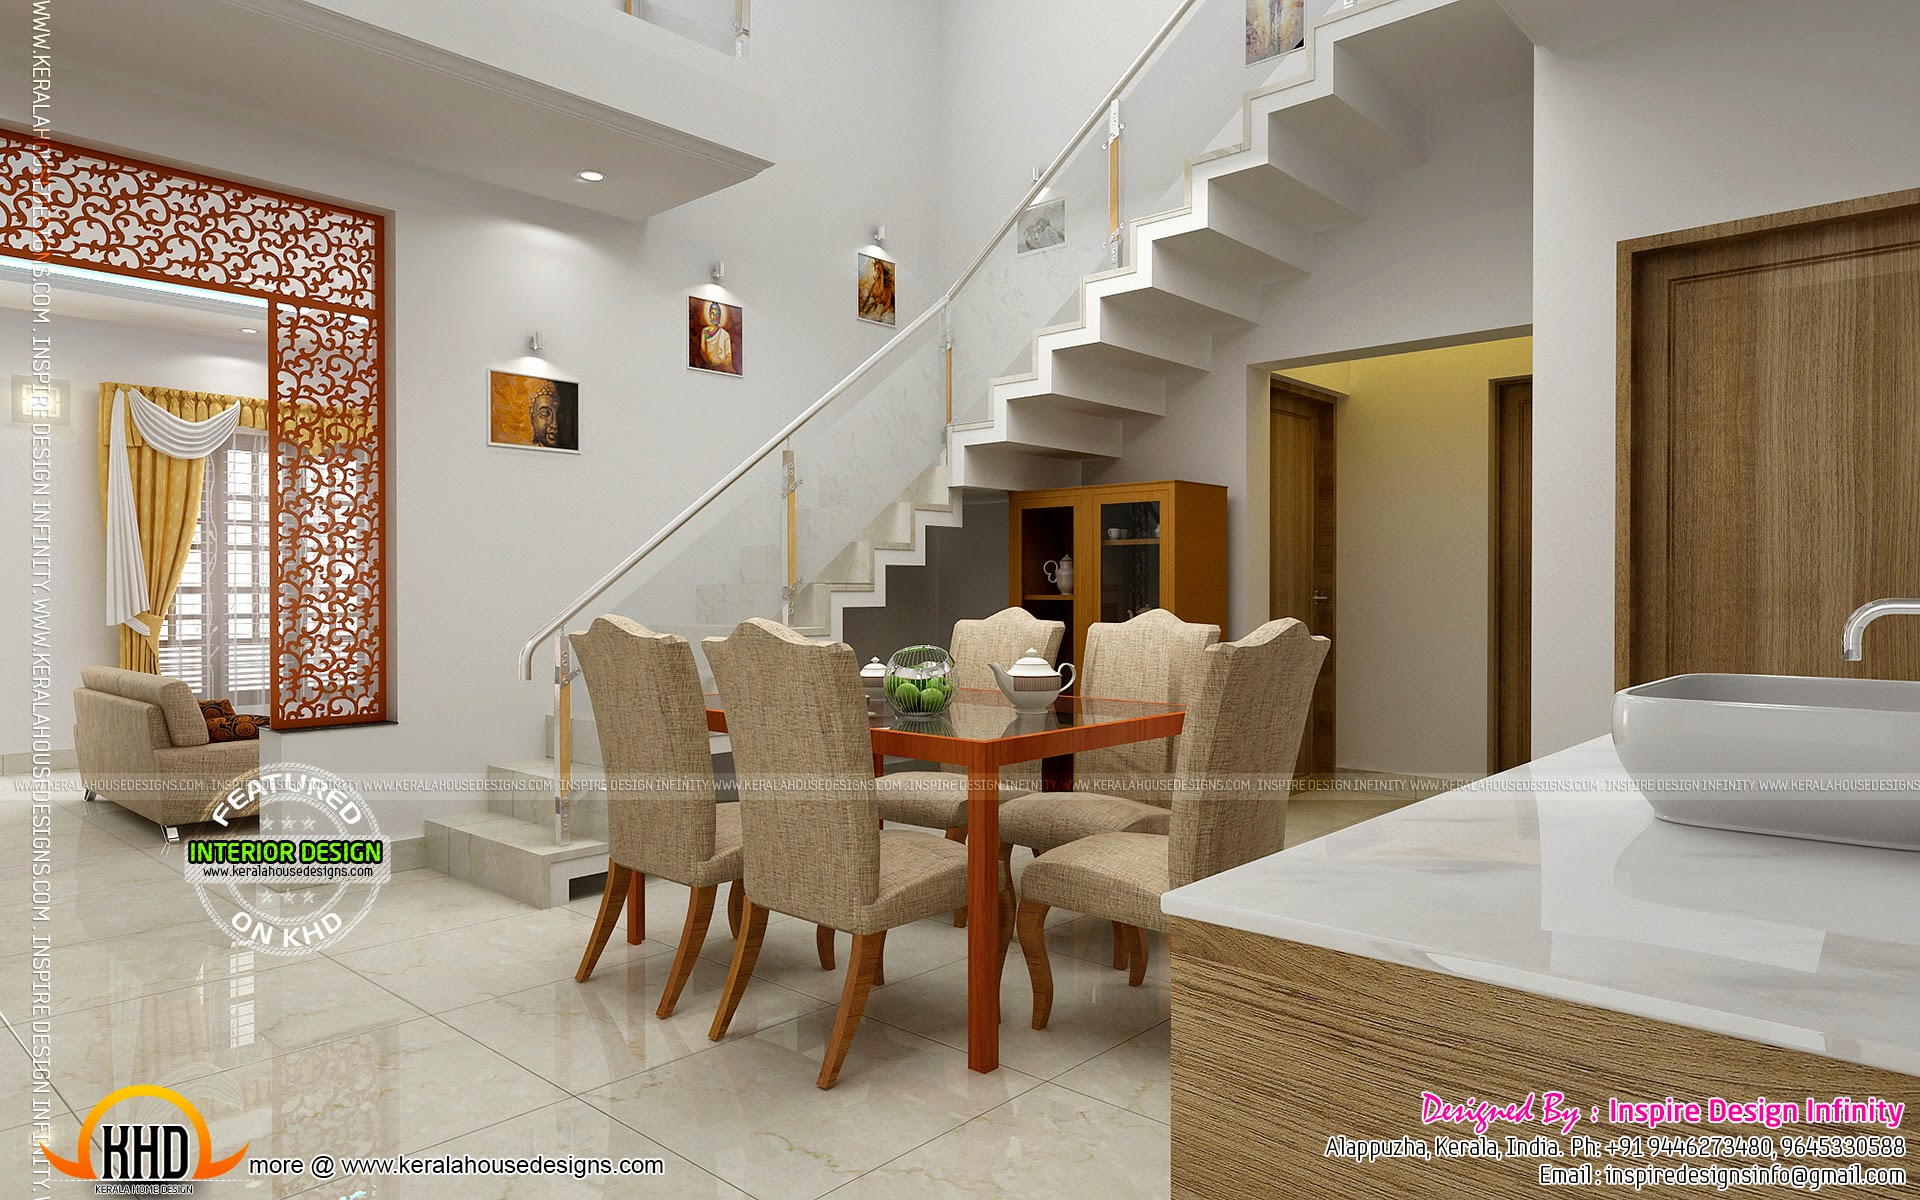 Dining room designs kerala home design and floor plans for Kitchen dining hall design